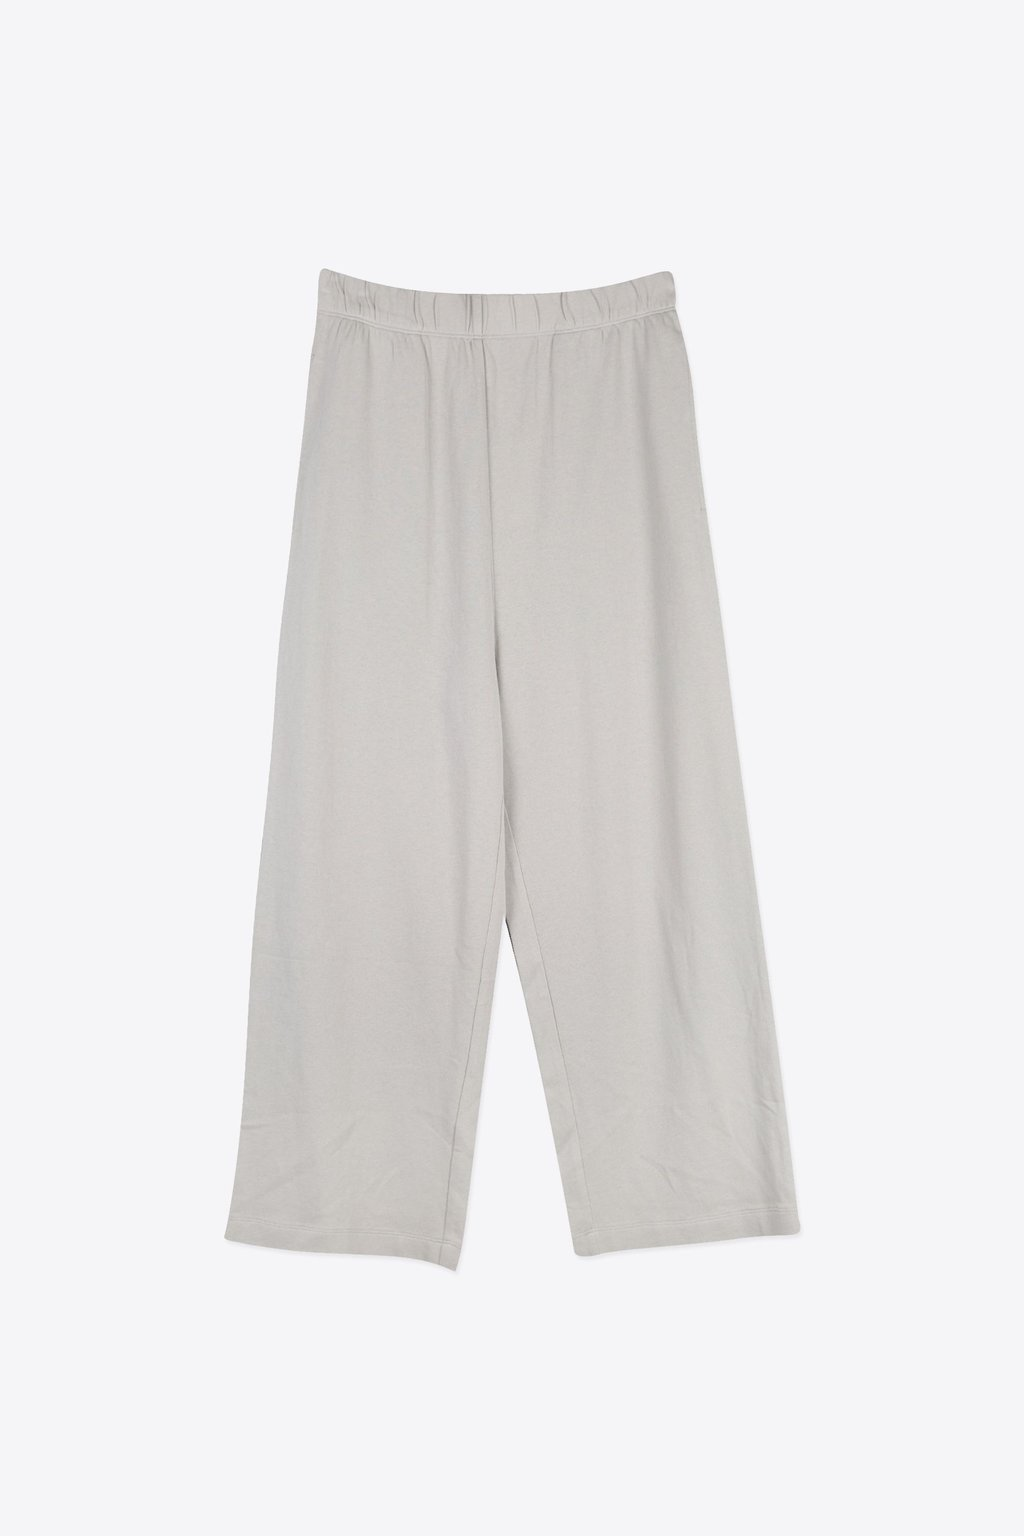 Pant 1794 Light Gray 7